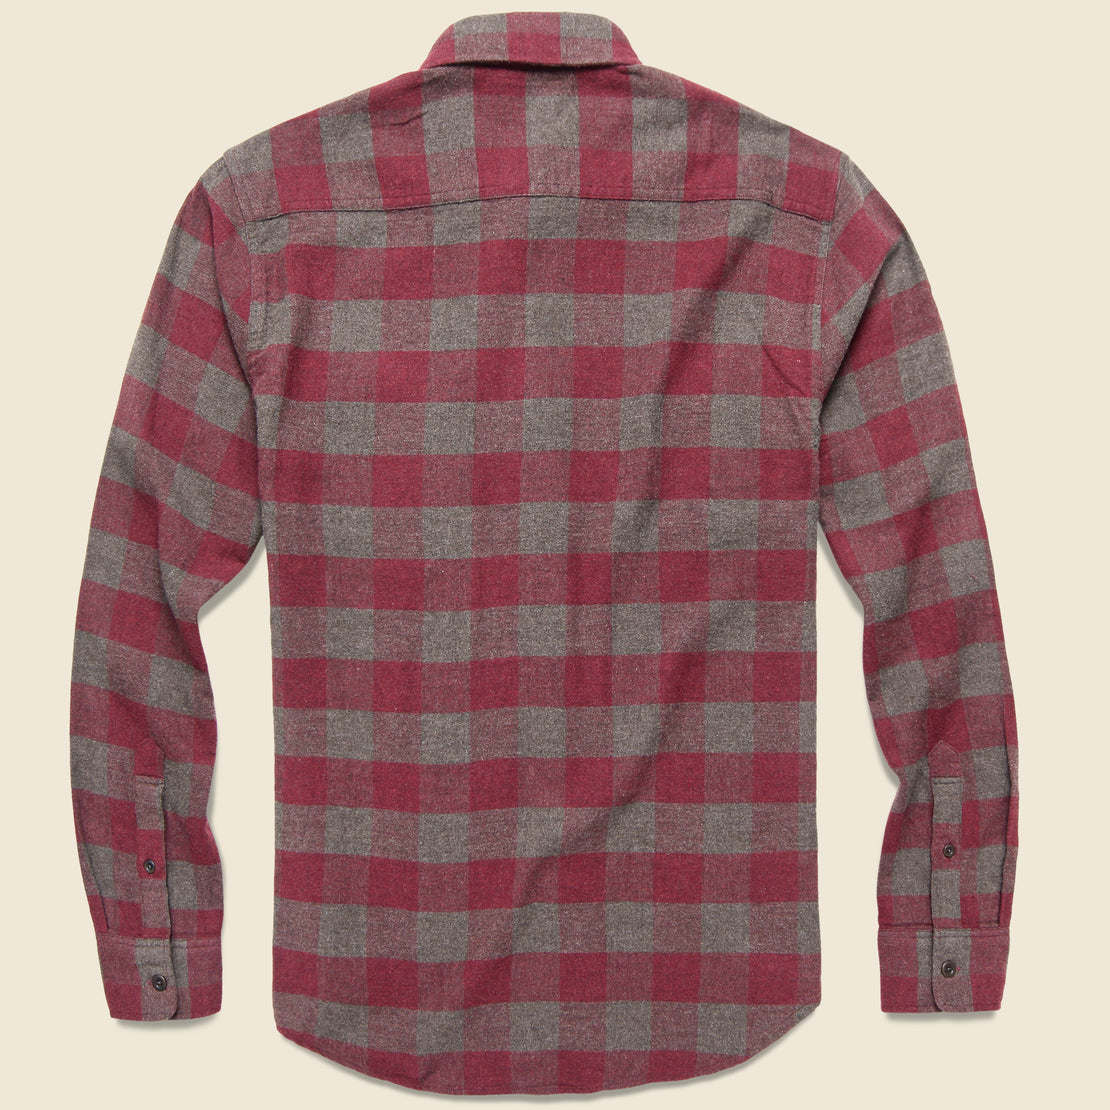 Brushed Alpine Flannel - Wine/Chestnut Buffalo